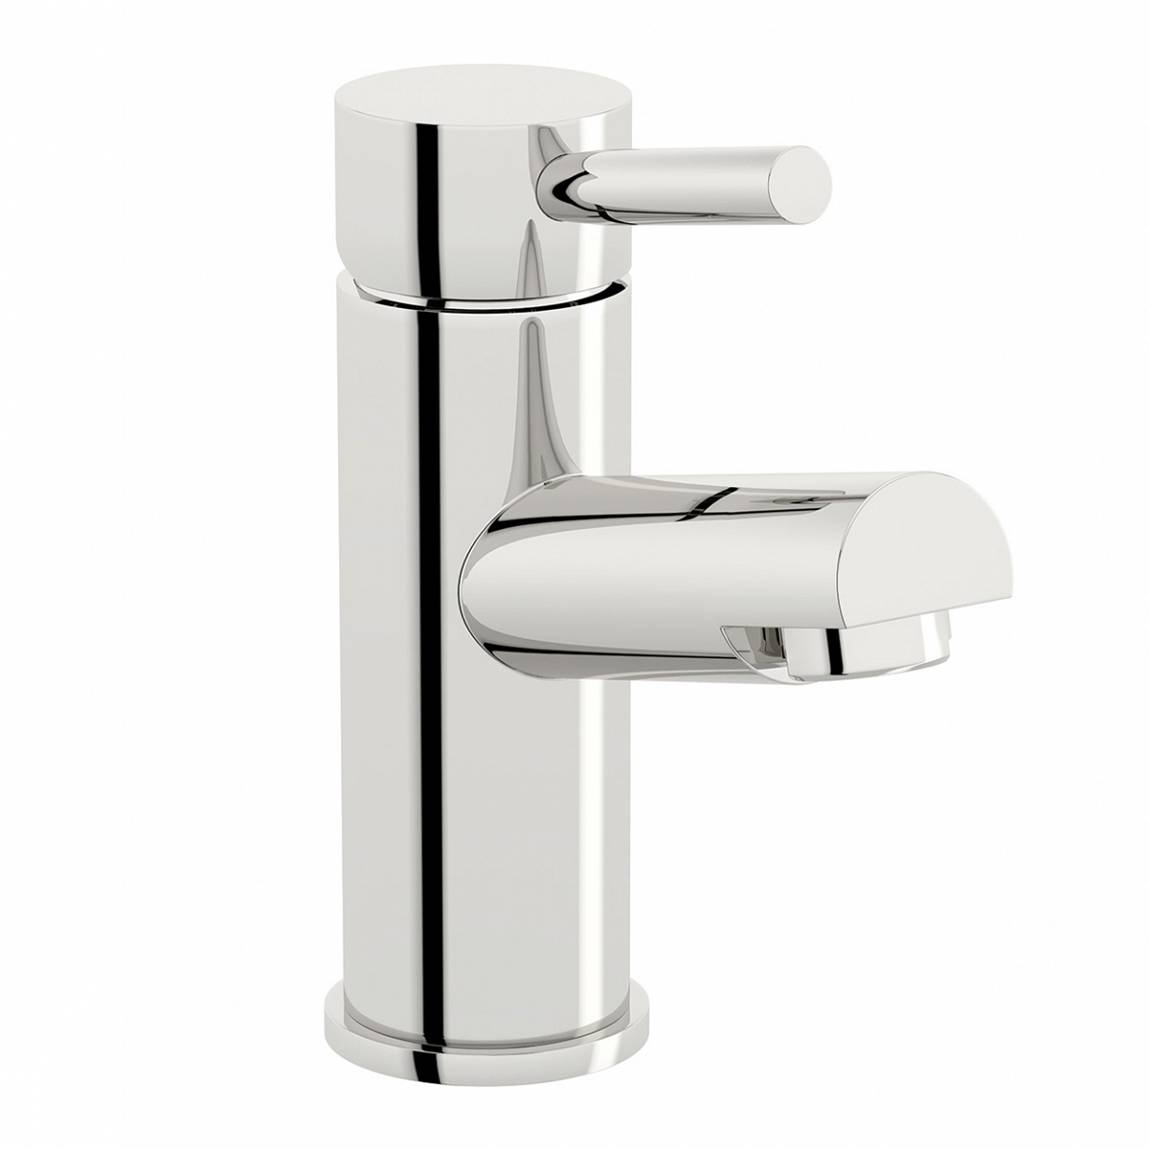 Image of Matrix Basin Mixer